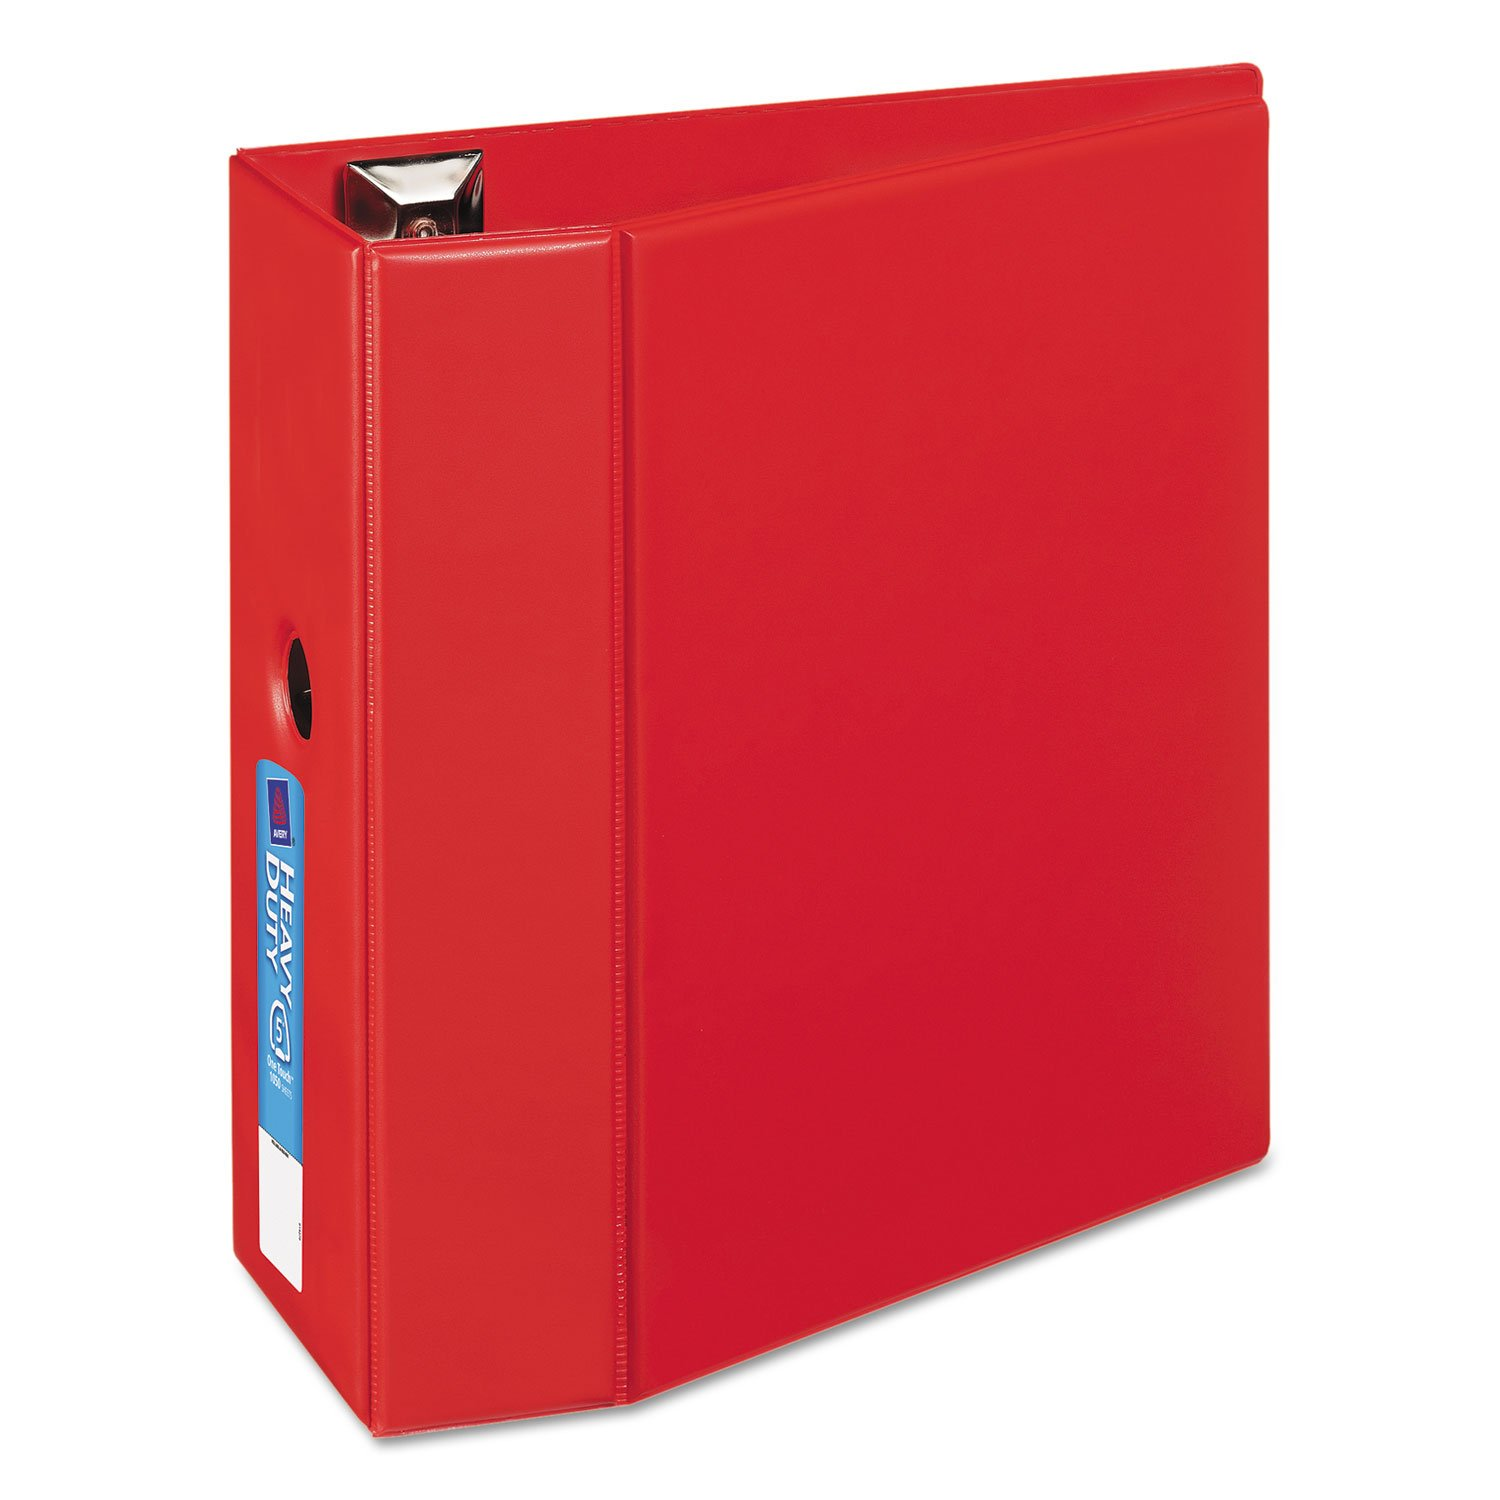 AVE79586 - Avery Heavy-Duty Binder with One Touch EZD Rings by AVERY